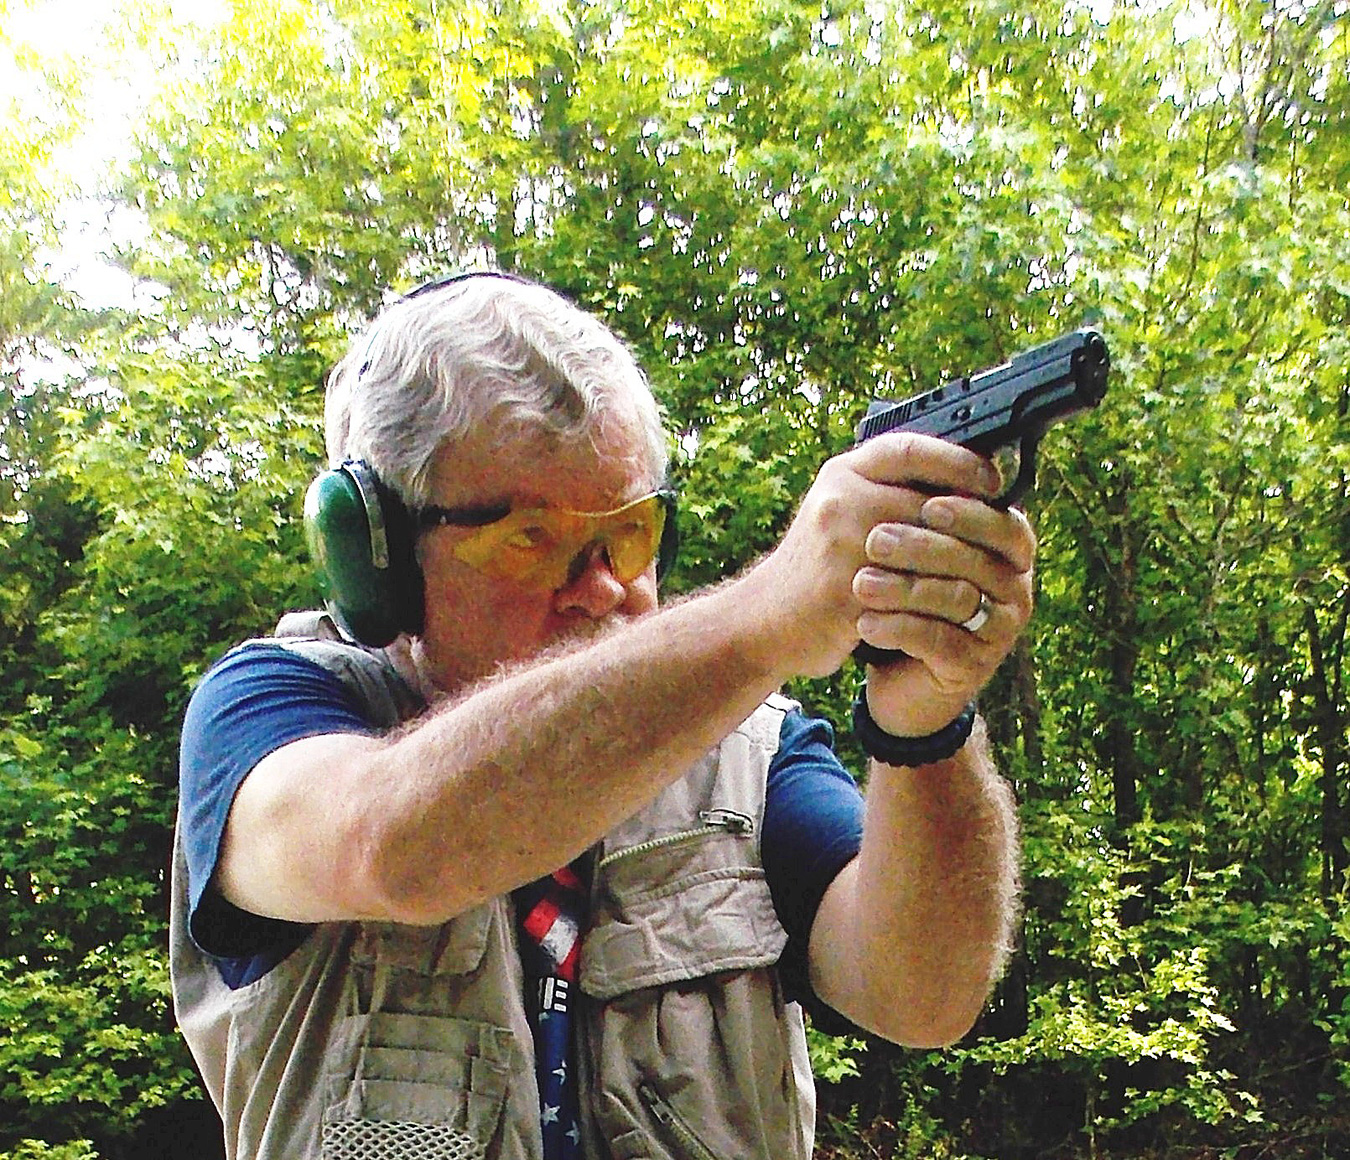 Bob Campbell shooting the CZ Rami handgun